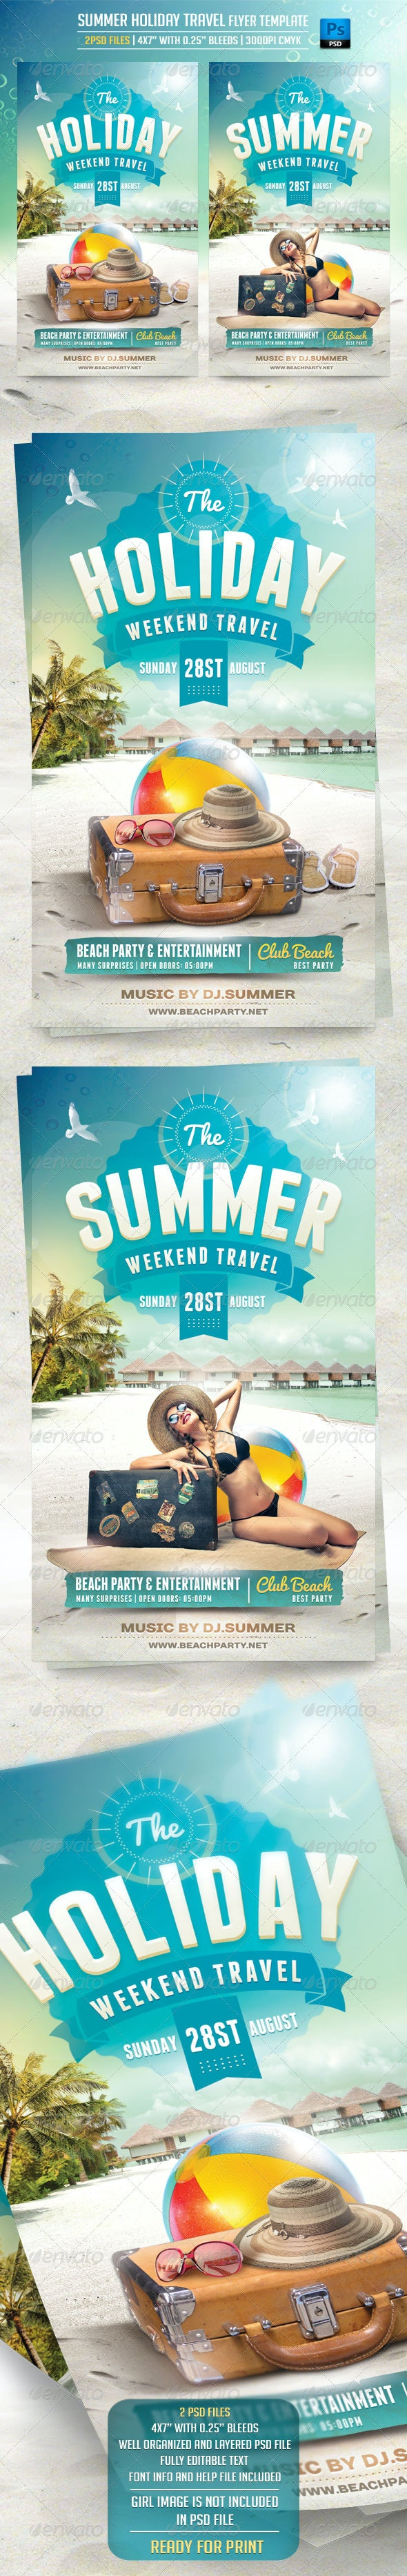 Summer Holiday Travel Flyer Template - Flyers Print Templates